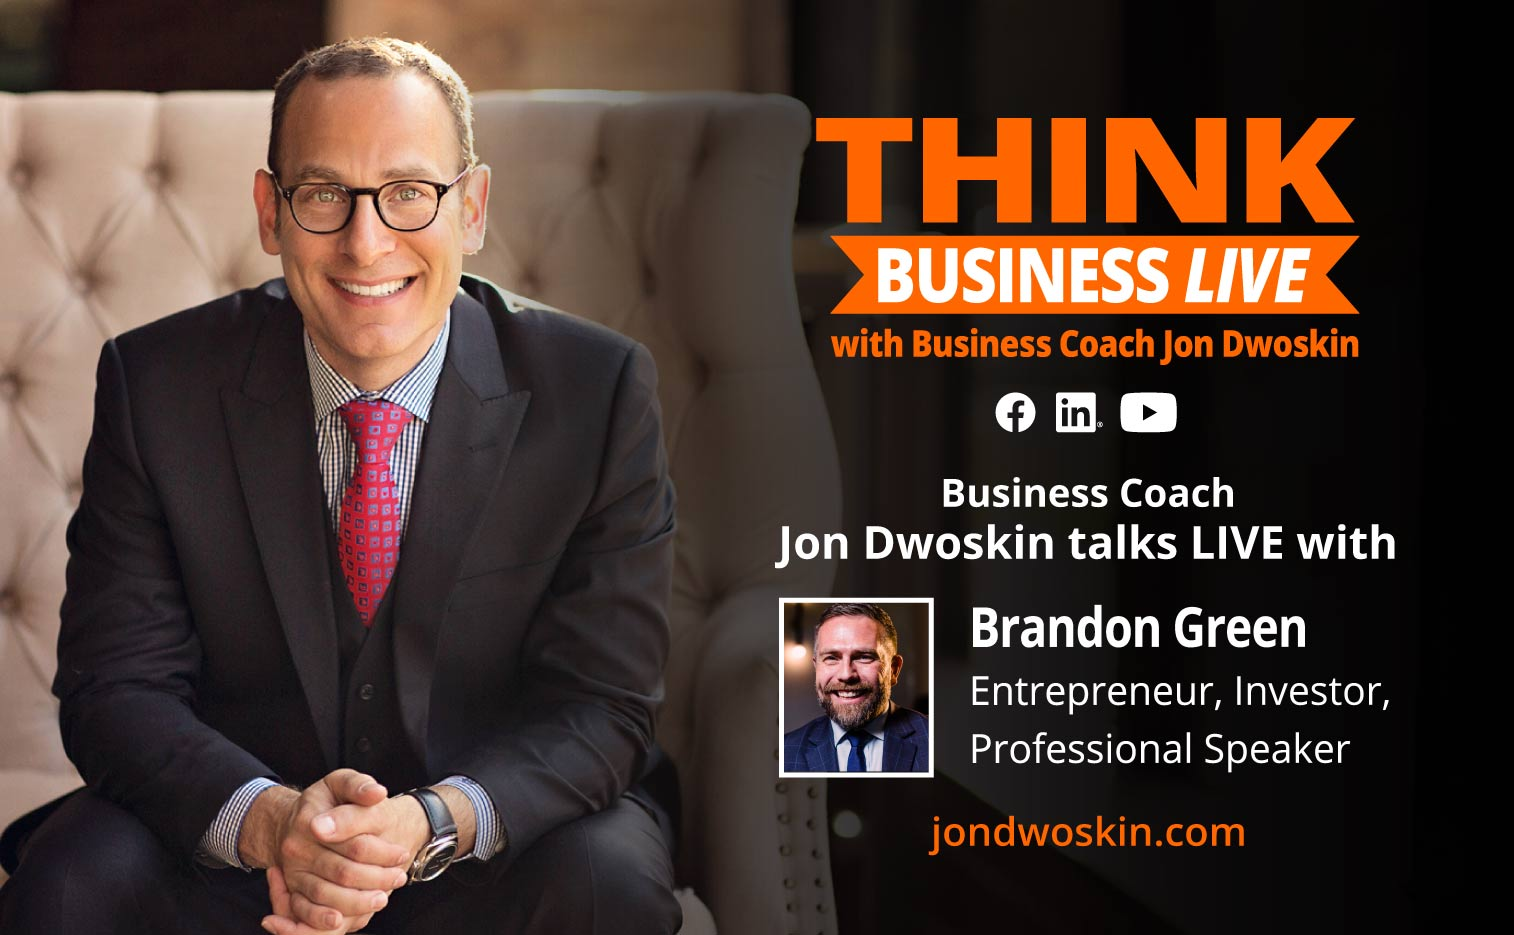 THINK Business LIVE: Jon Dwoskin Talks with Brandon Green